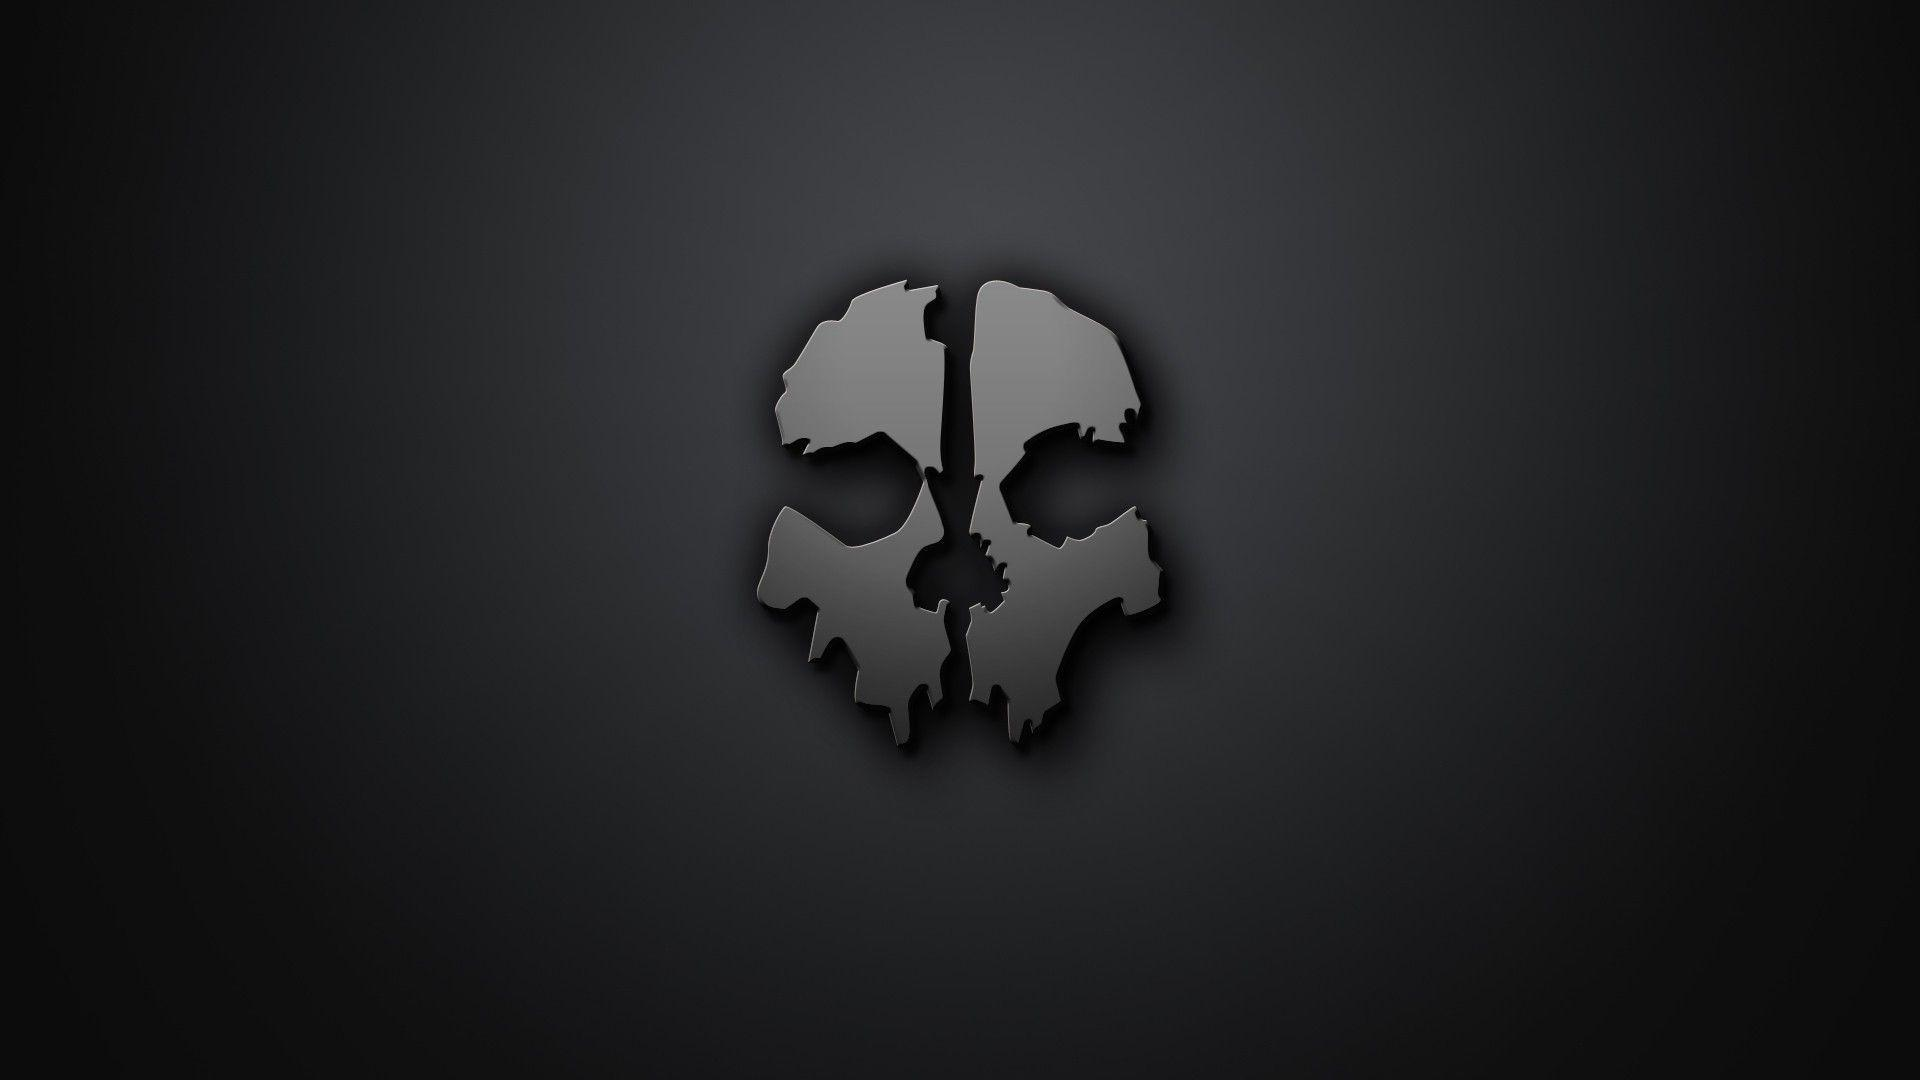 skull, Artwork, Minimalism, Gray Background, Call Of Duty, Call Of